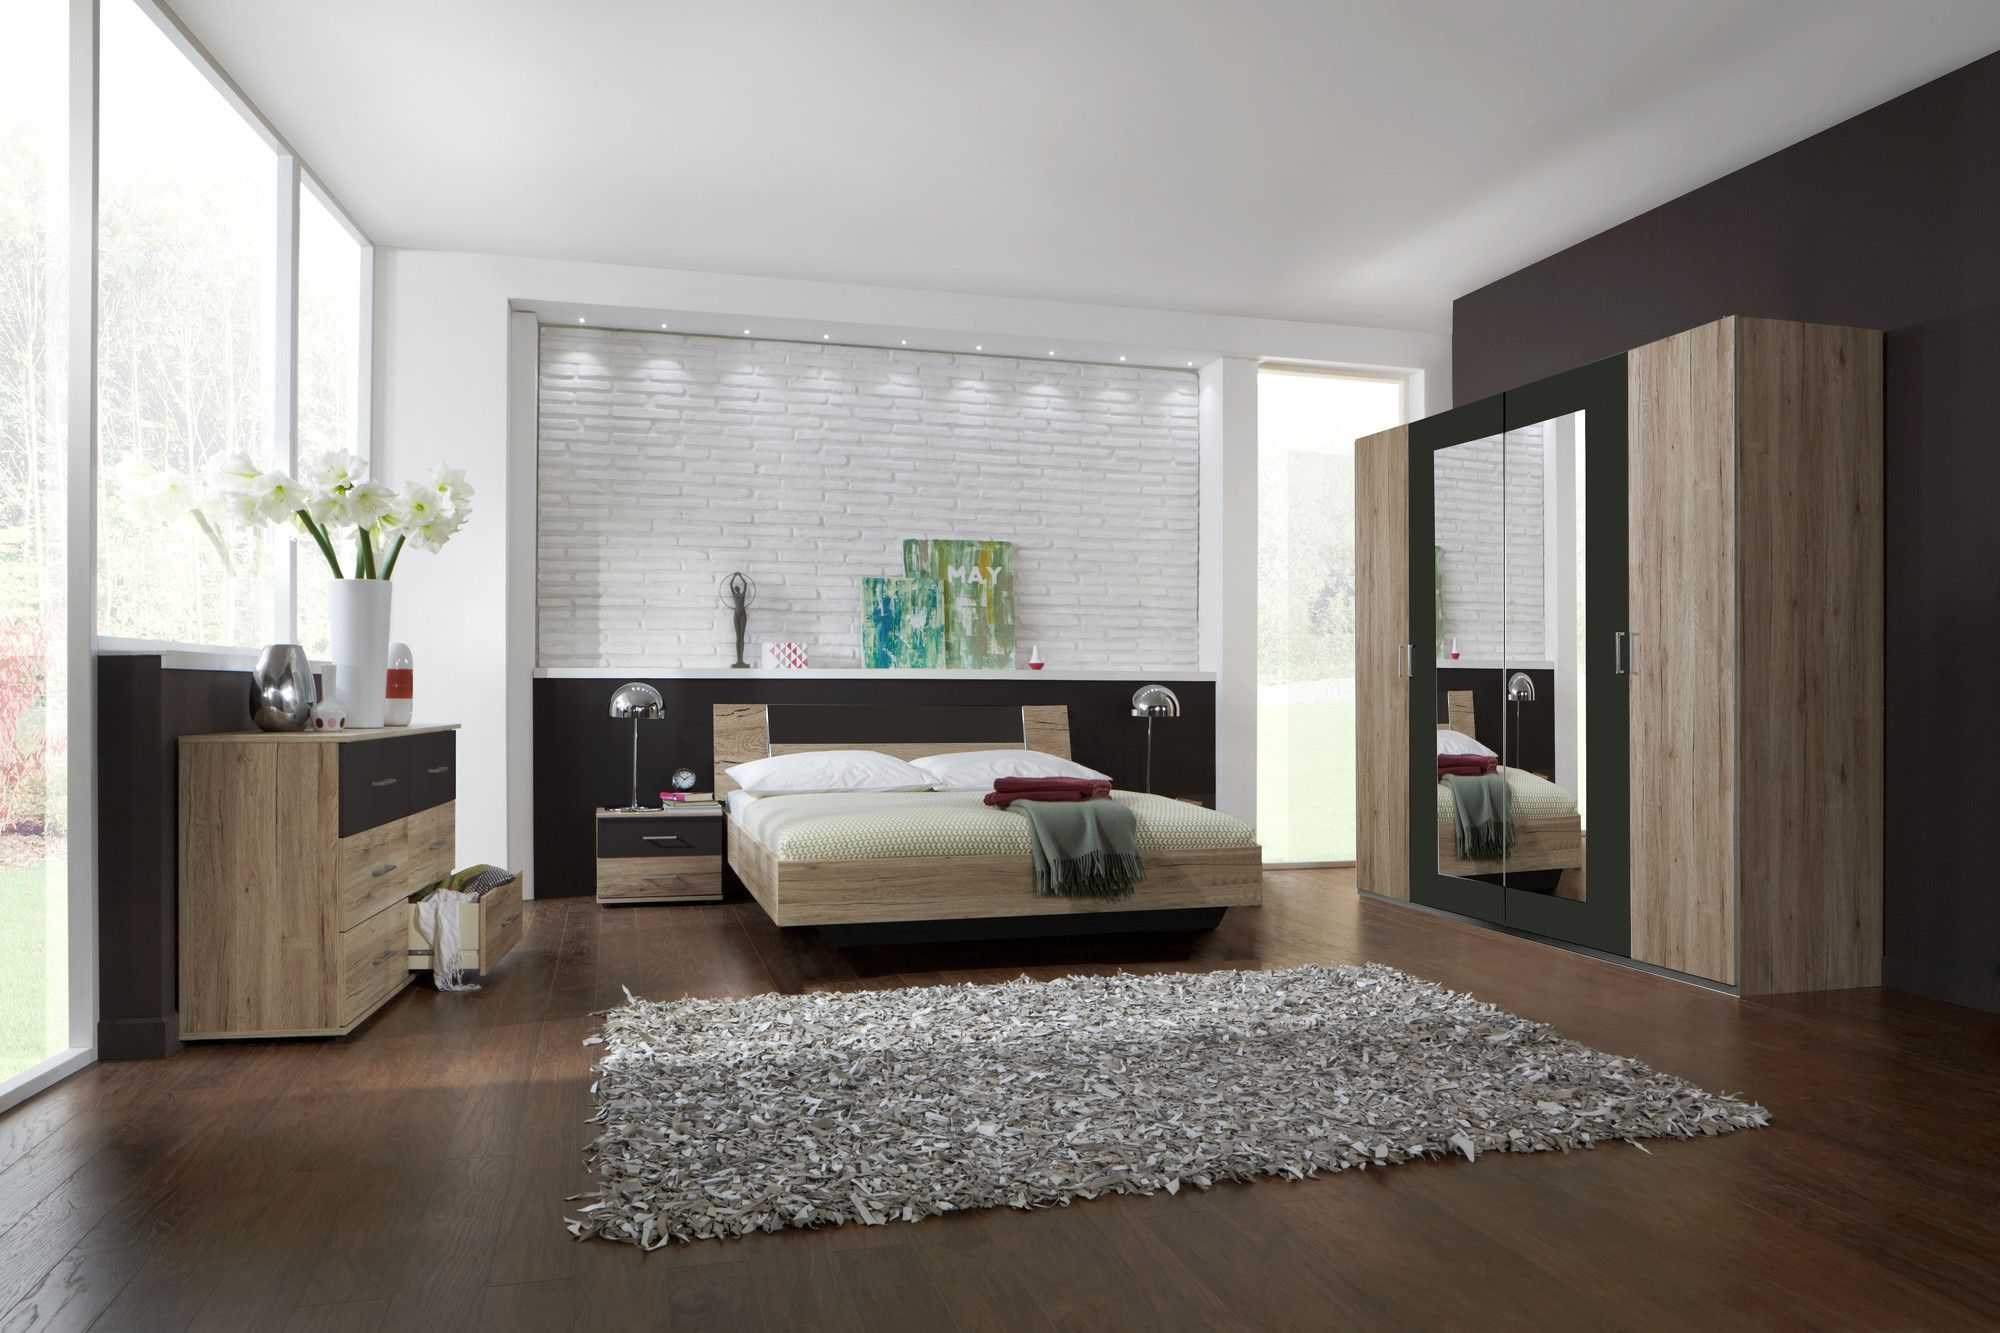 Comment amnager une chambre  coucher moderne